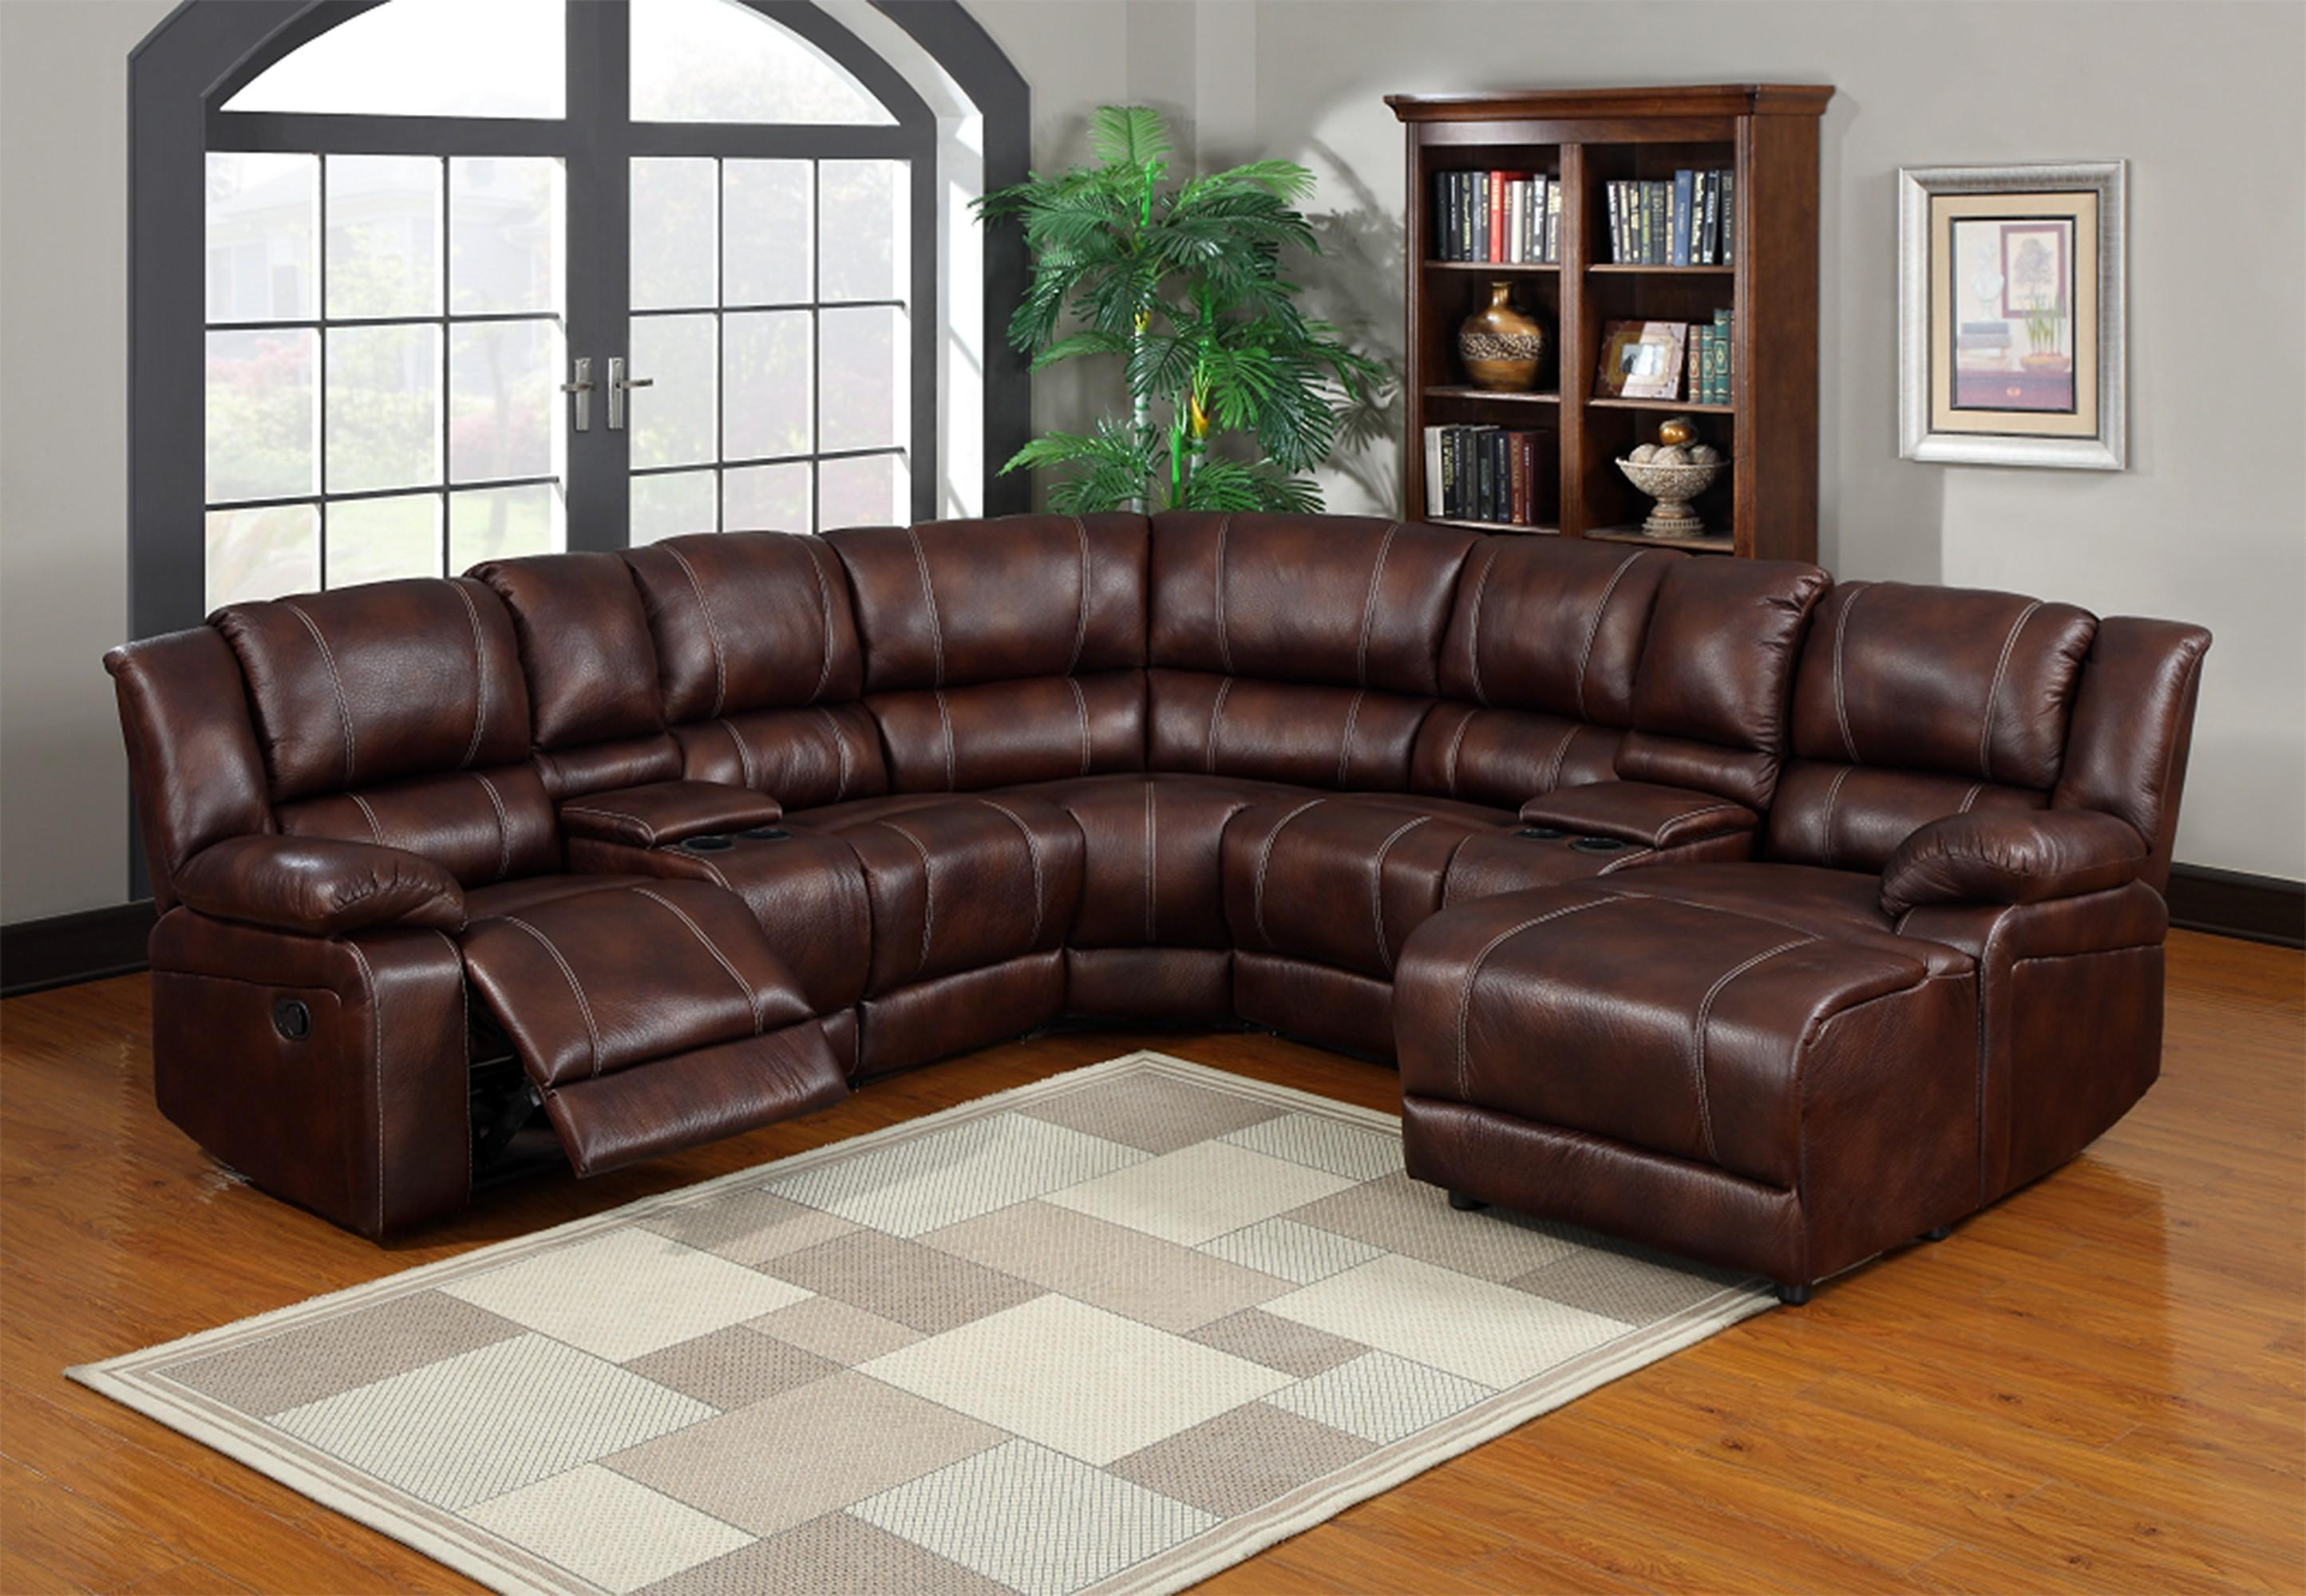 Motion Sofas And Sectionals – Leather Sectional Sofa Pertaining To Motion Sectional Sofas (Image 9 of 20)